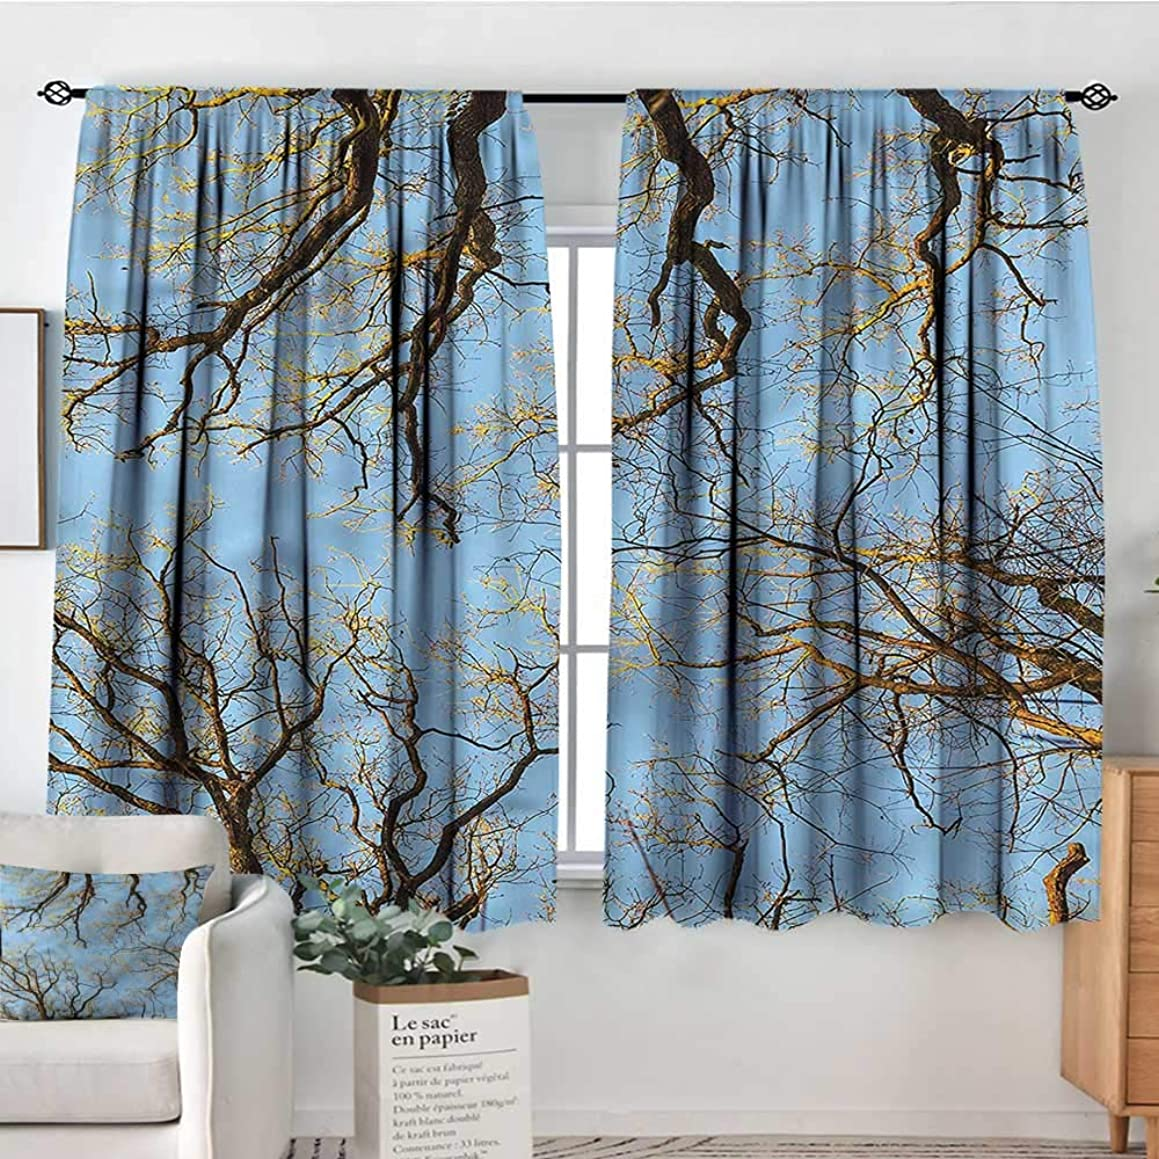 Anzhutwelve Nature,Indoor Curtain Vibrant Sky with Trees 72